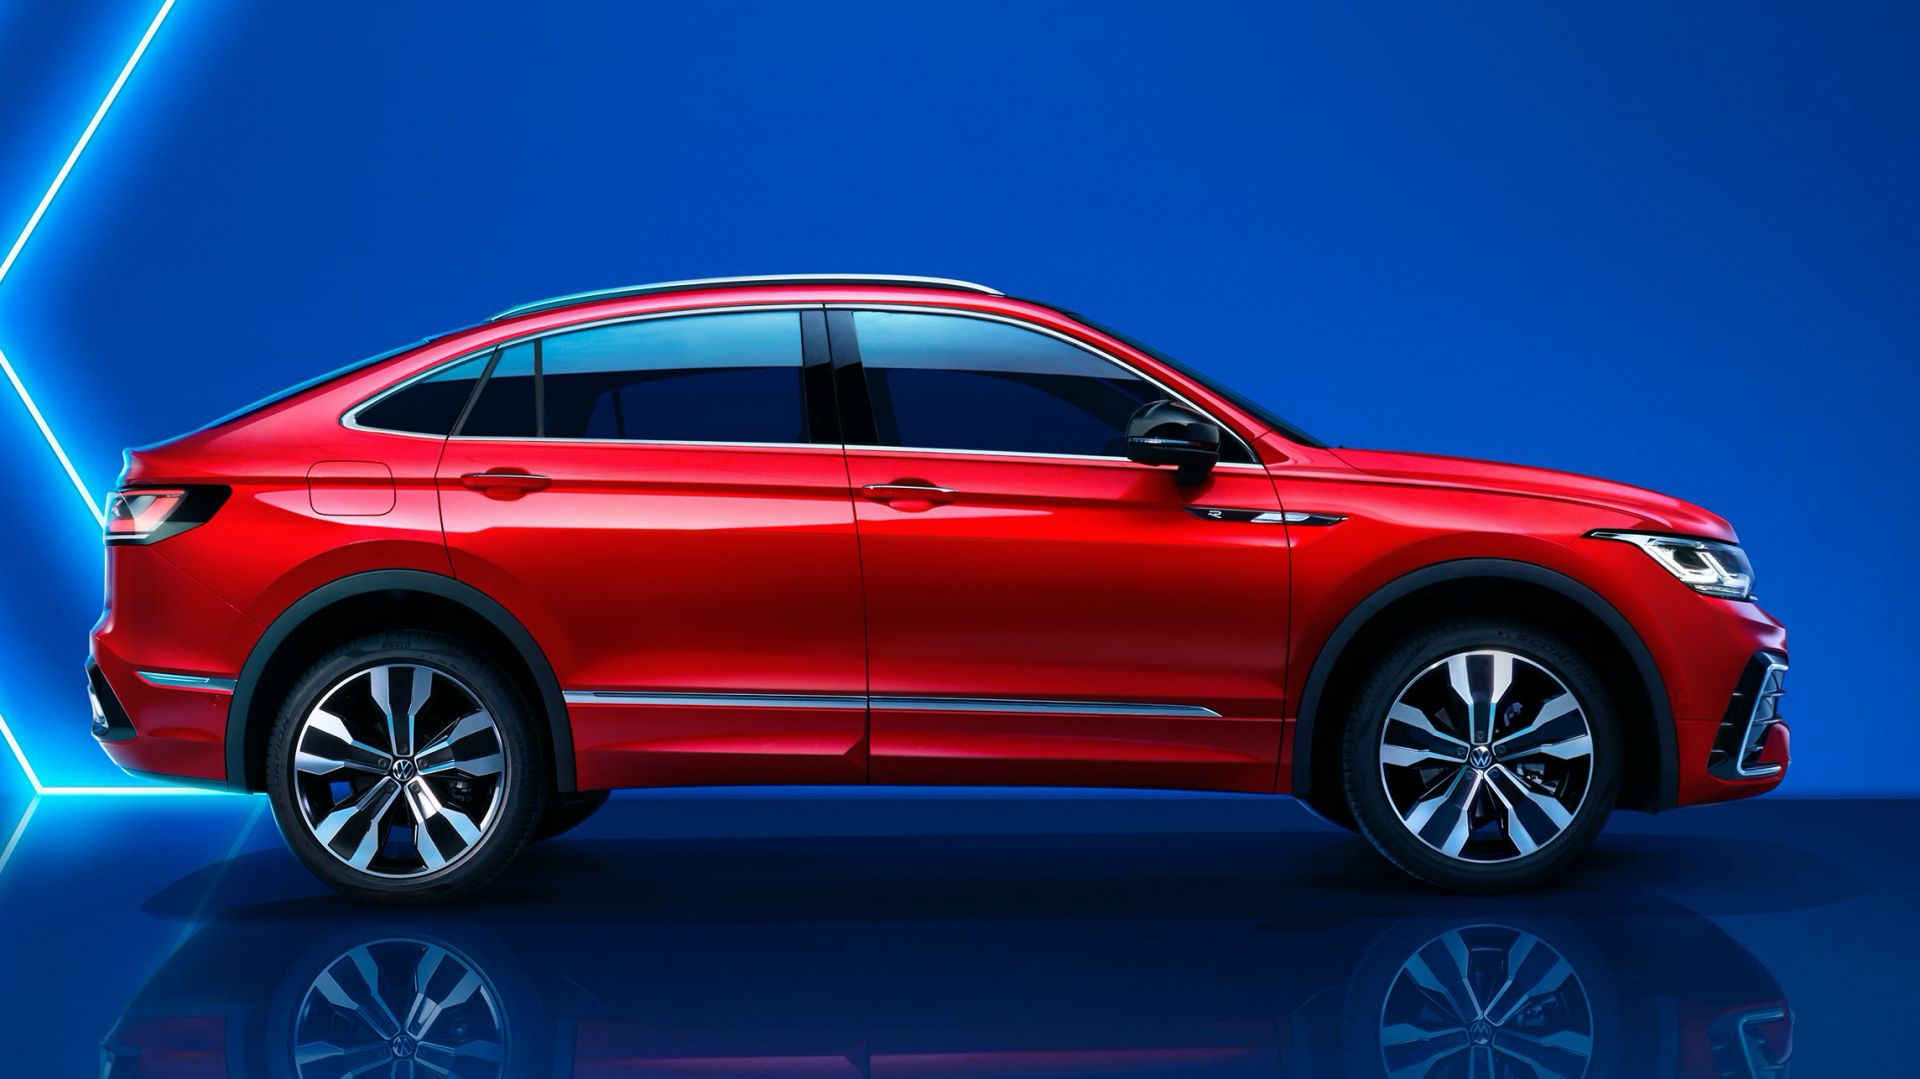 2021 Volkswagen Tiguan X SUV Coupe Revealed With R Line ...